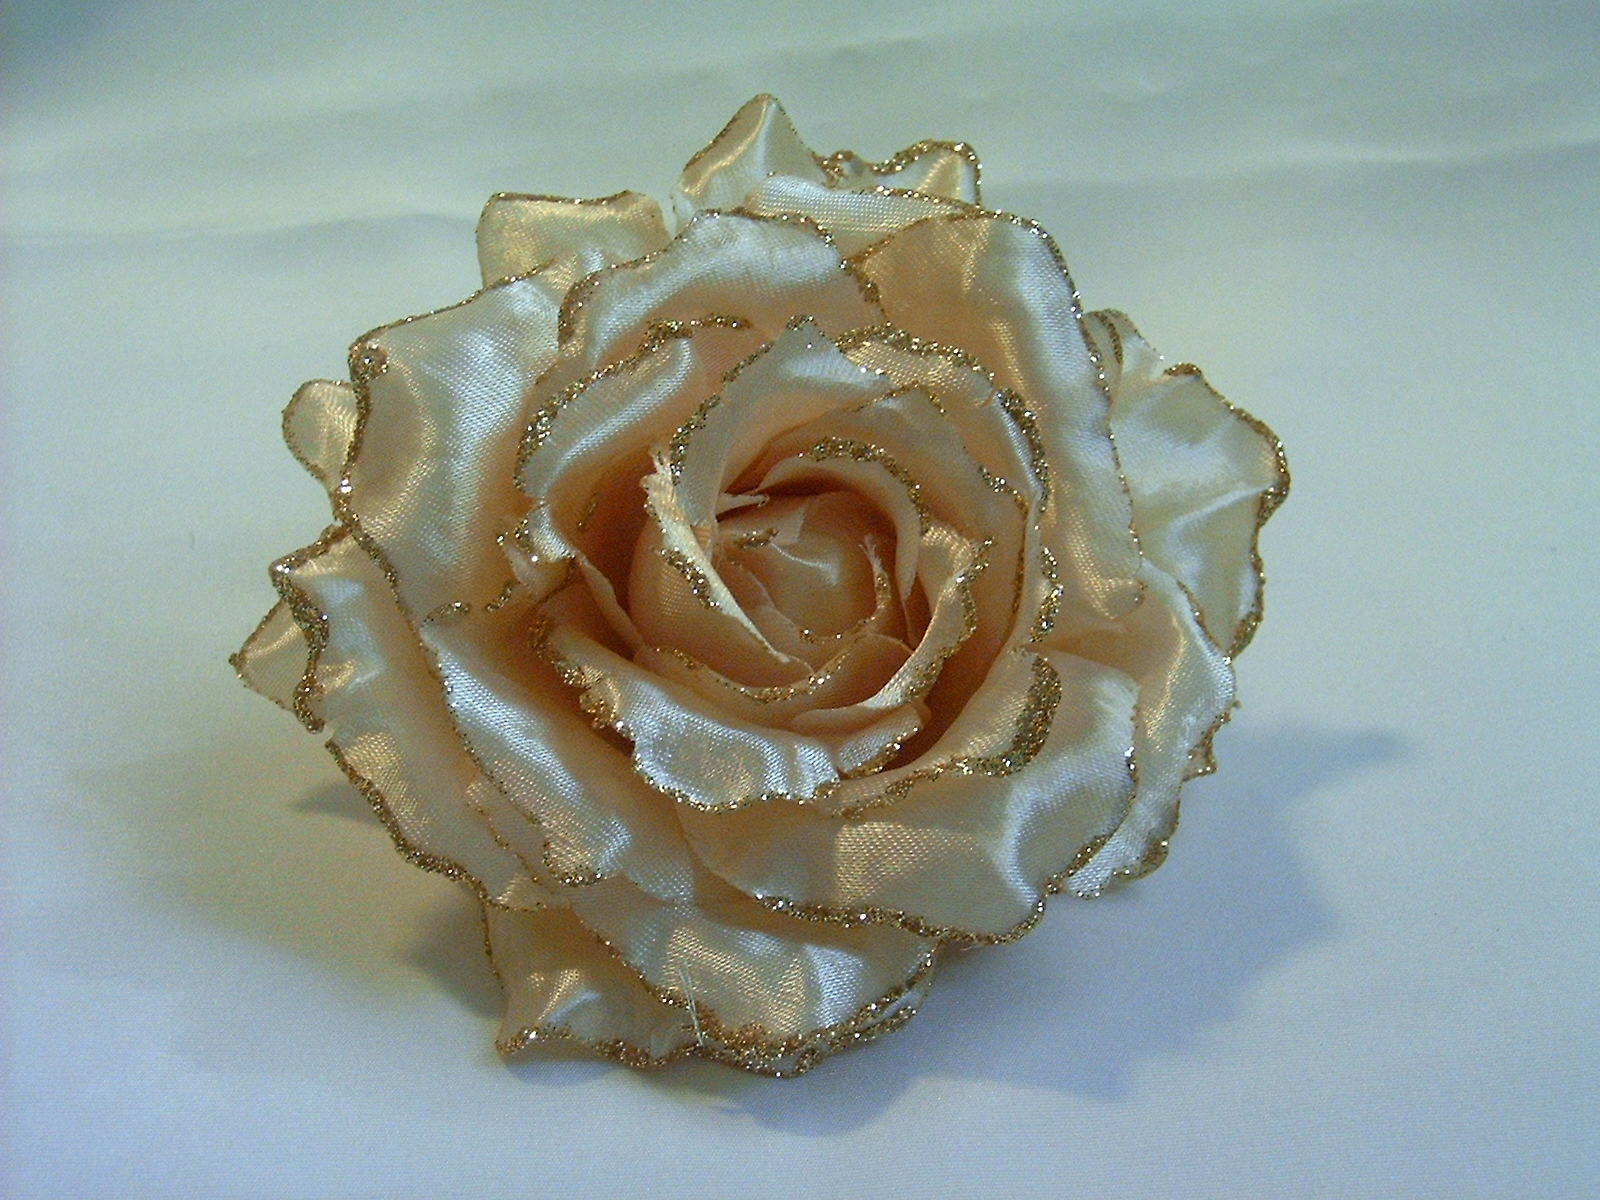 Champagne Fabric Flower 01 by sweetlilfly on DeviantArt